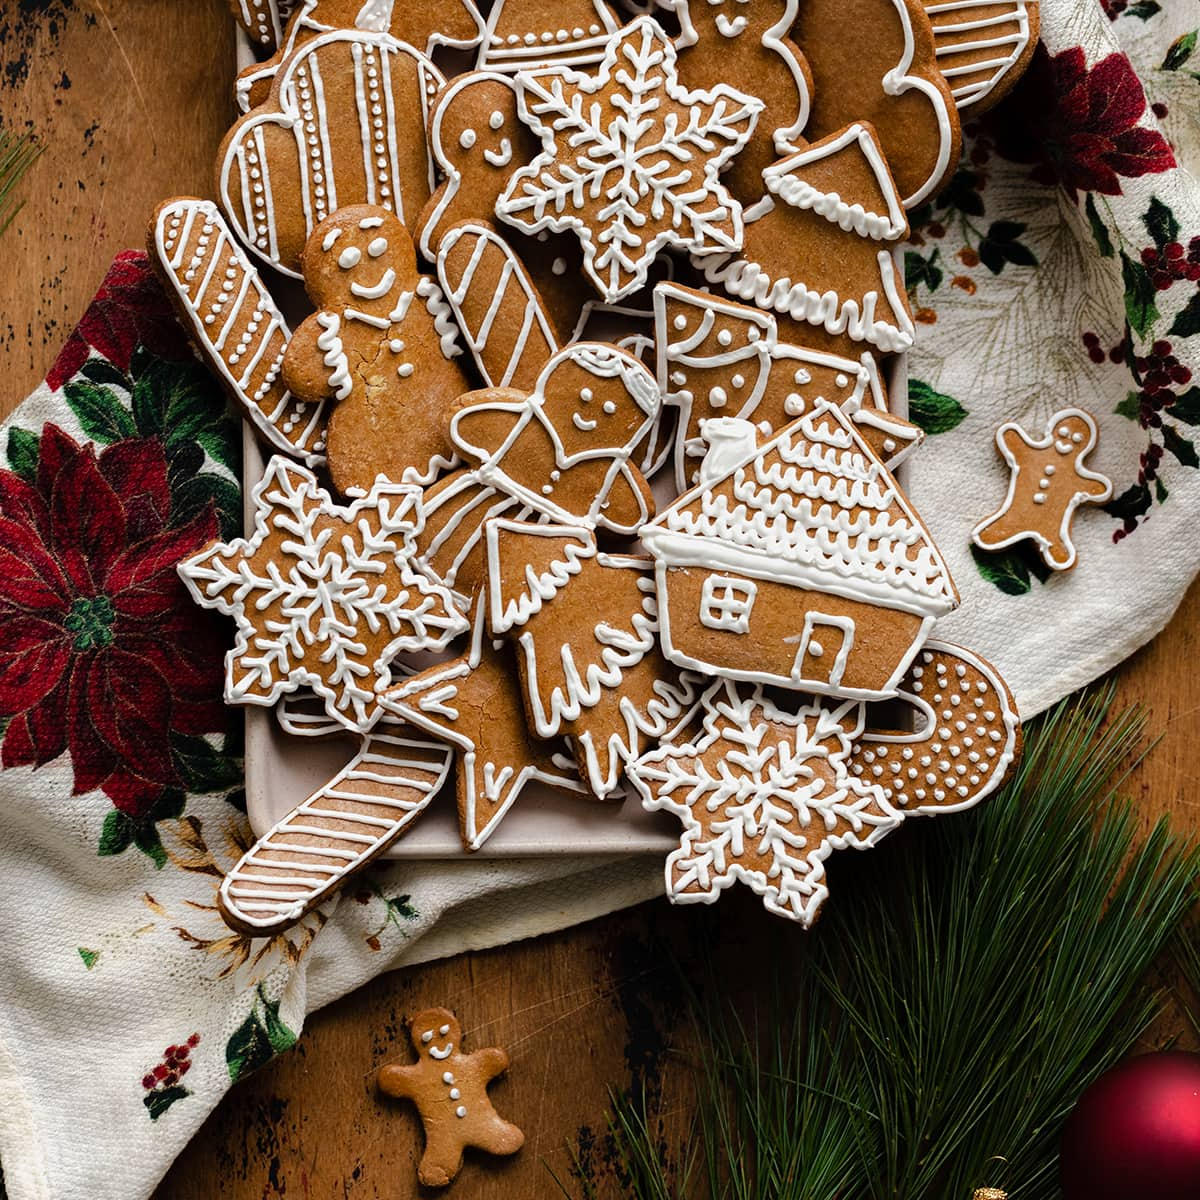 Czech Gingerbread Cookies on a plate with a Christmas tea towel underneath. On a light wooden background with pine branches and Christmas decorations around the plate.